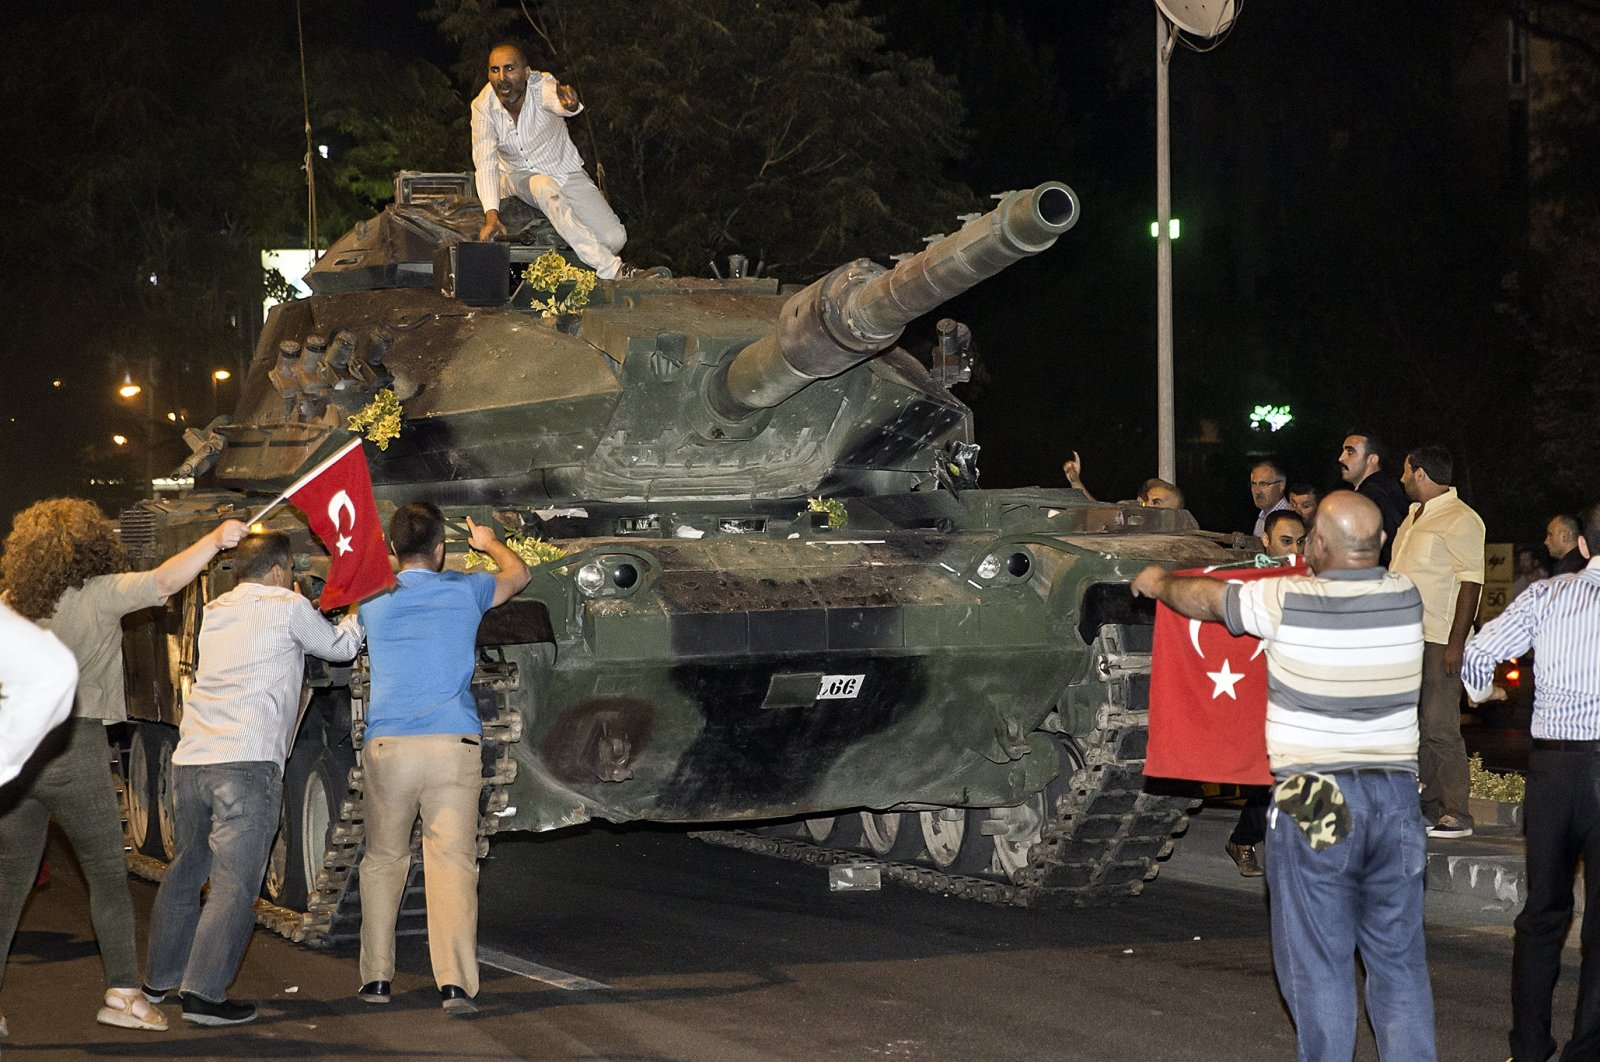 People confront a tank controlled by FETÖ's putschists during the coup attempt, in the capital Ankara, Turkey, July 15, 2016. (AA PHOTO)